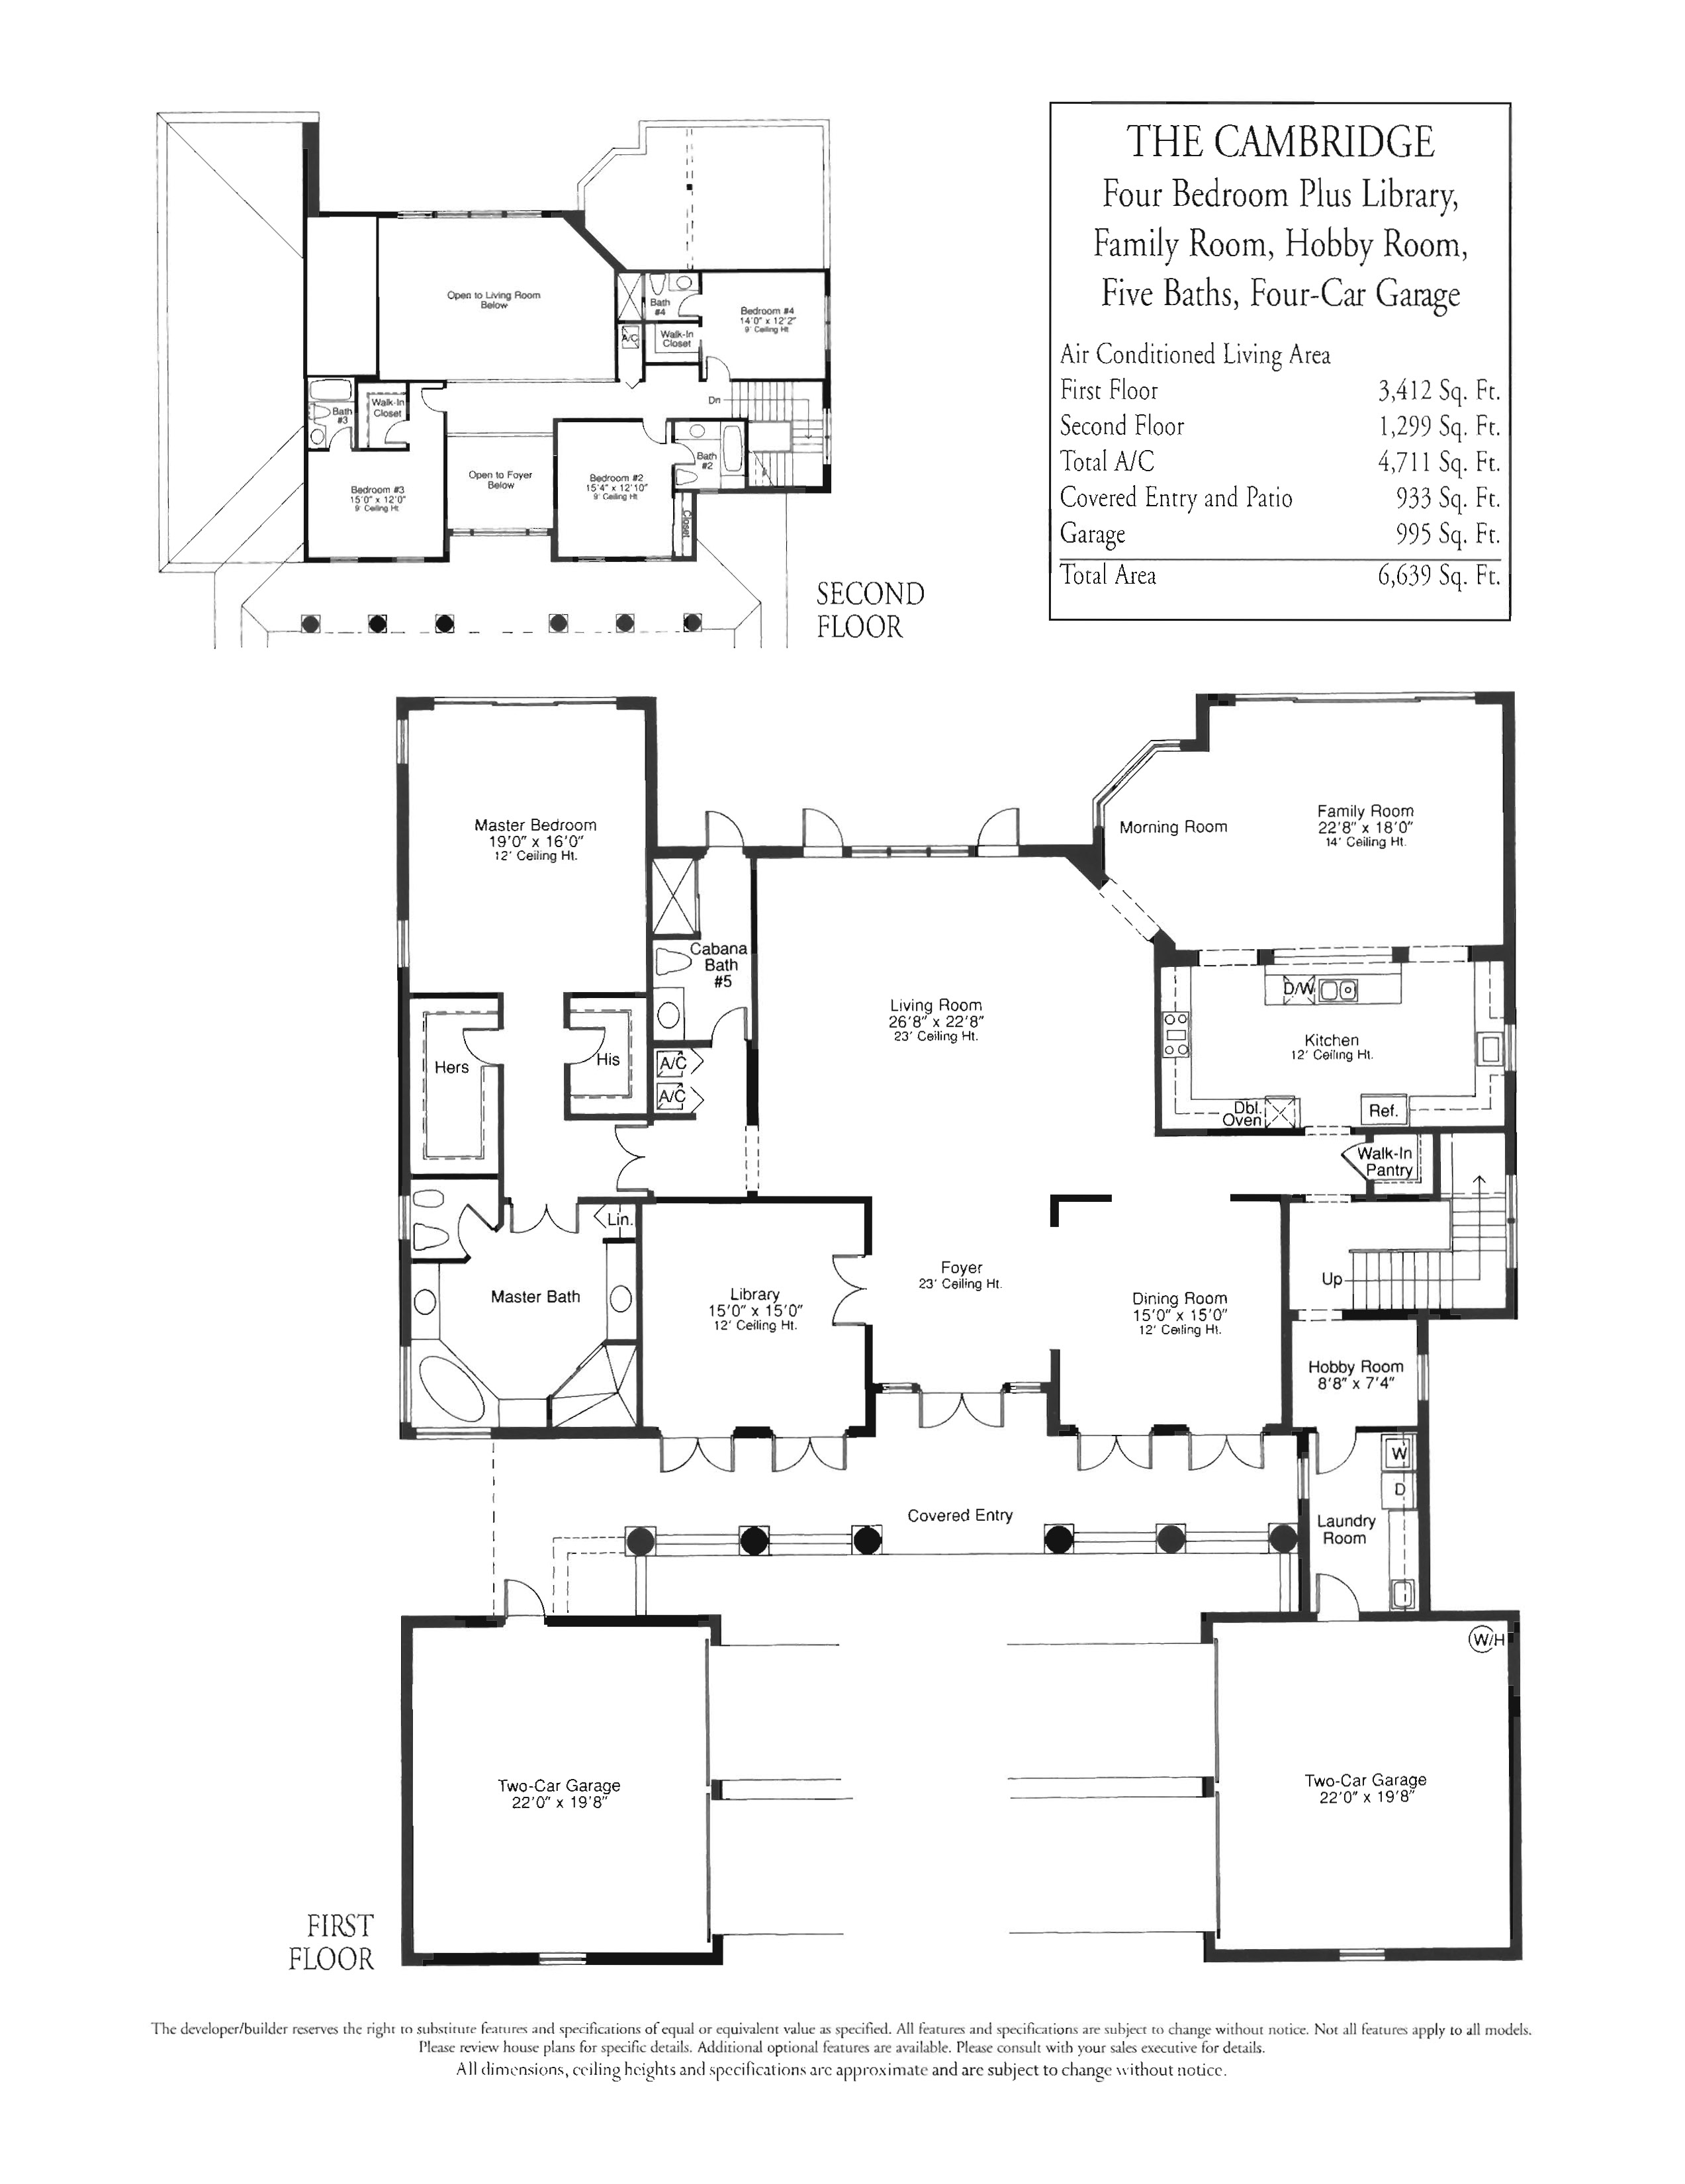 4 br   Library   hobby room 5 bath 4 car garage 4 711 a c sq ft   6 639  total sq ft. Stonebrook Estates   Floor Plans and Community Profile